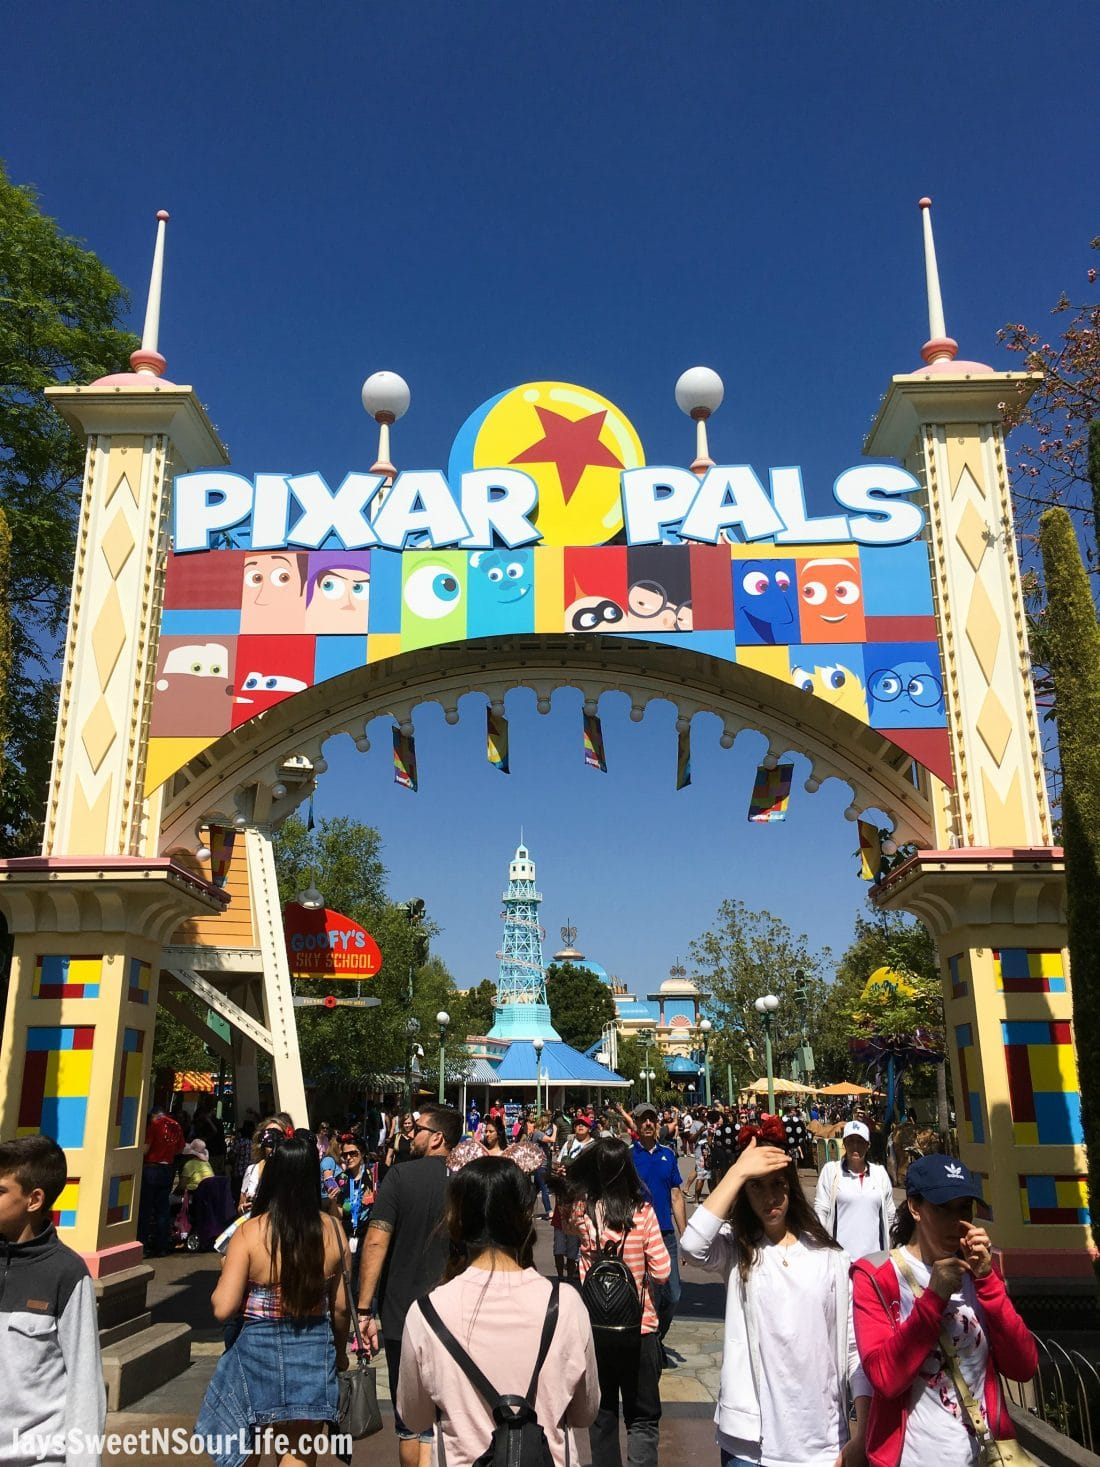 Pixar Fest Pixar Pals Entrance. Pixar Fest at Disneyland runs from April 13 through September 3rd.